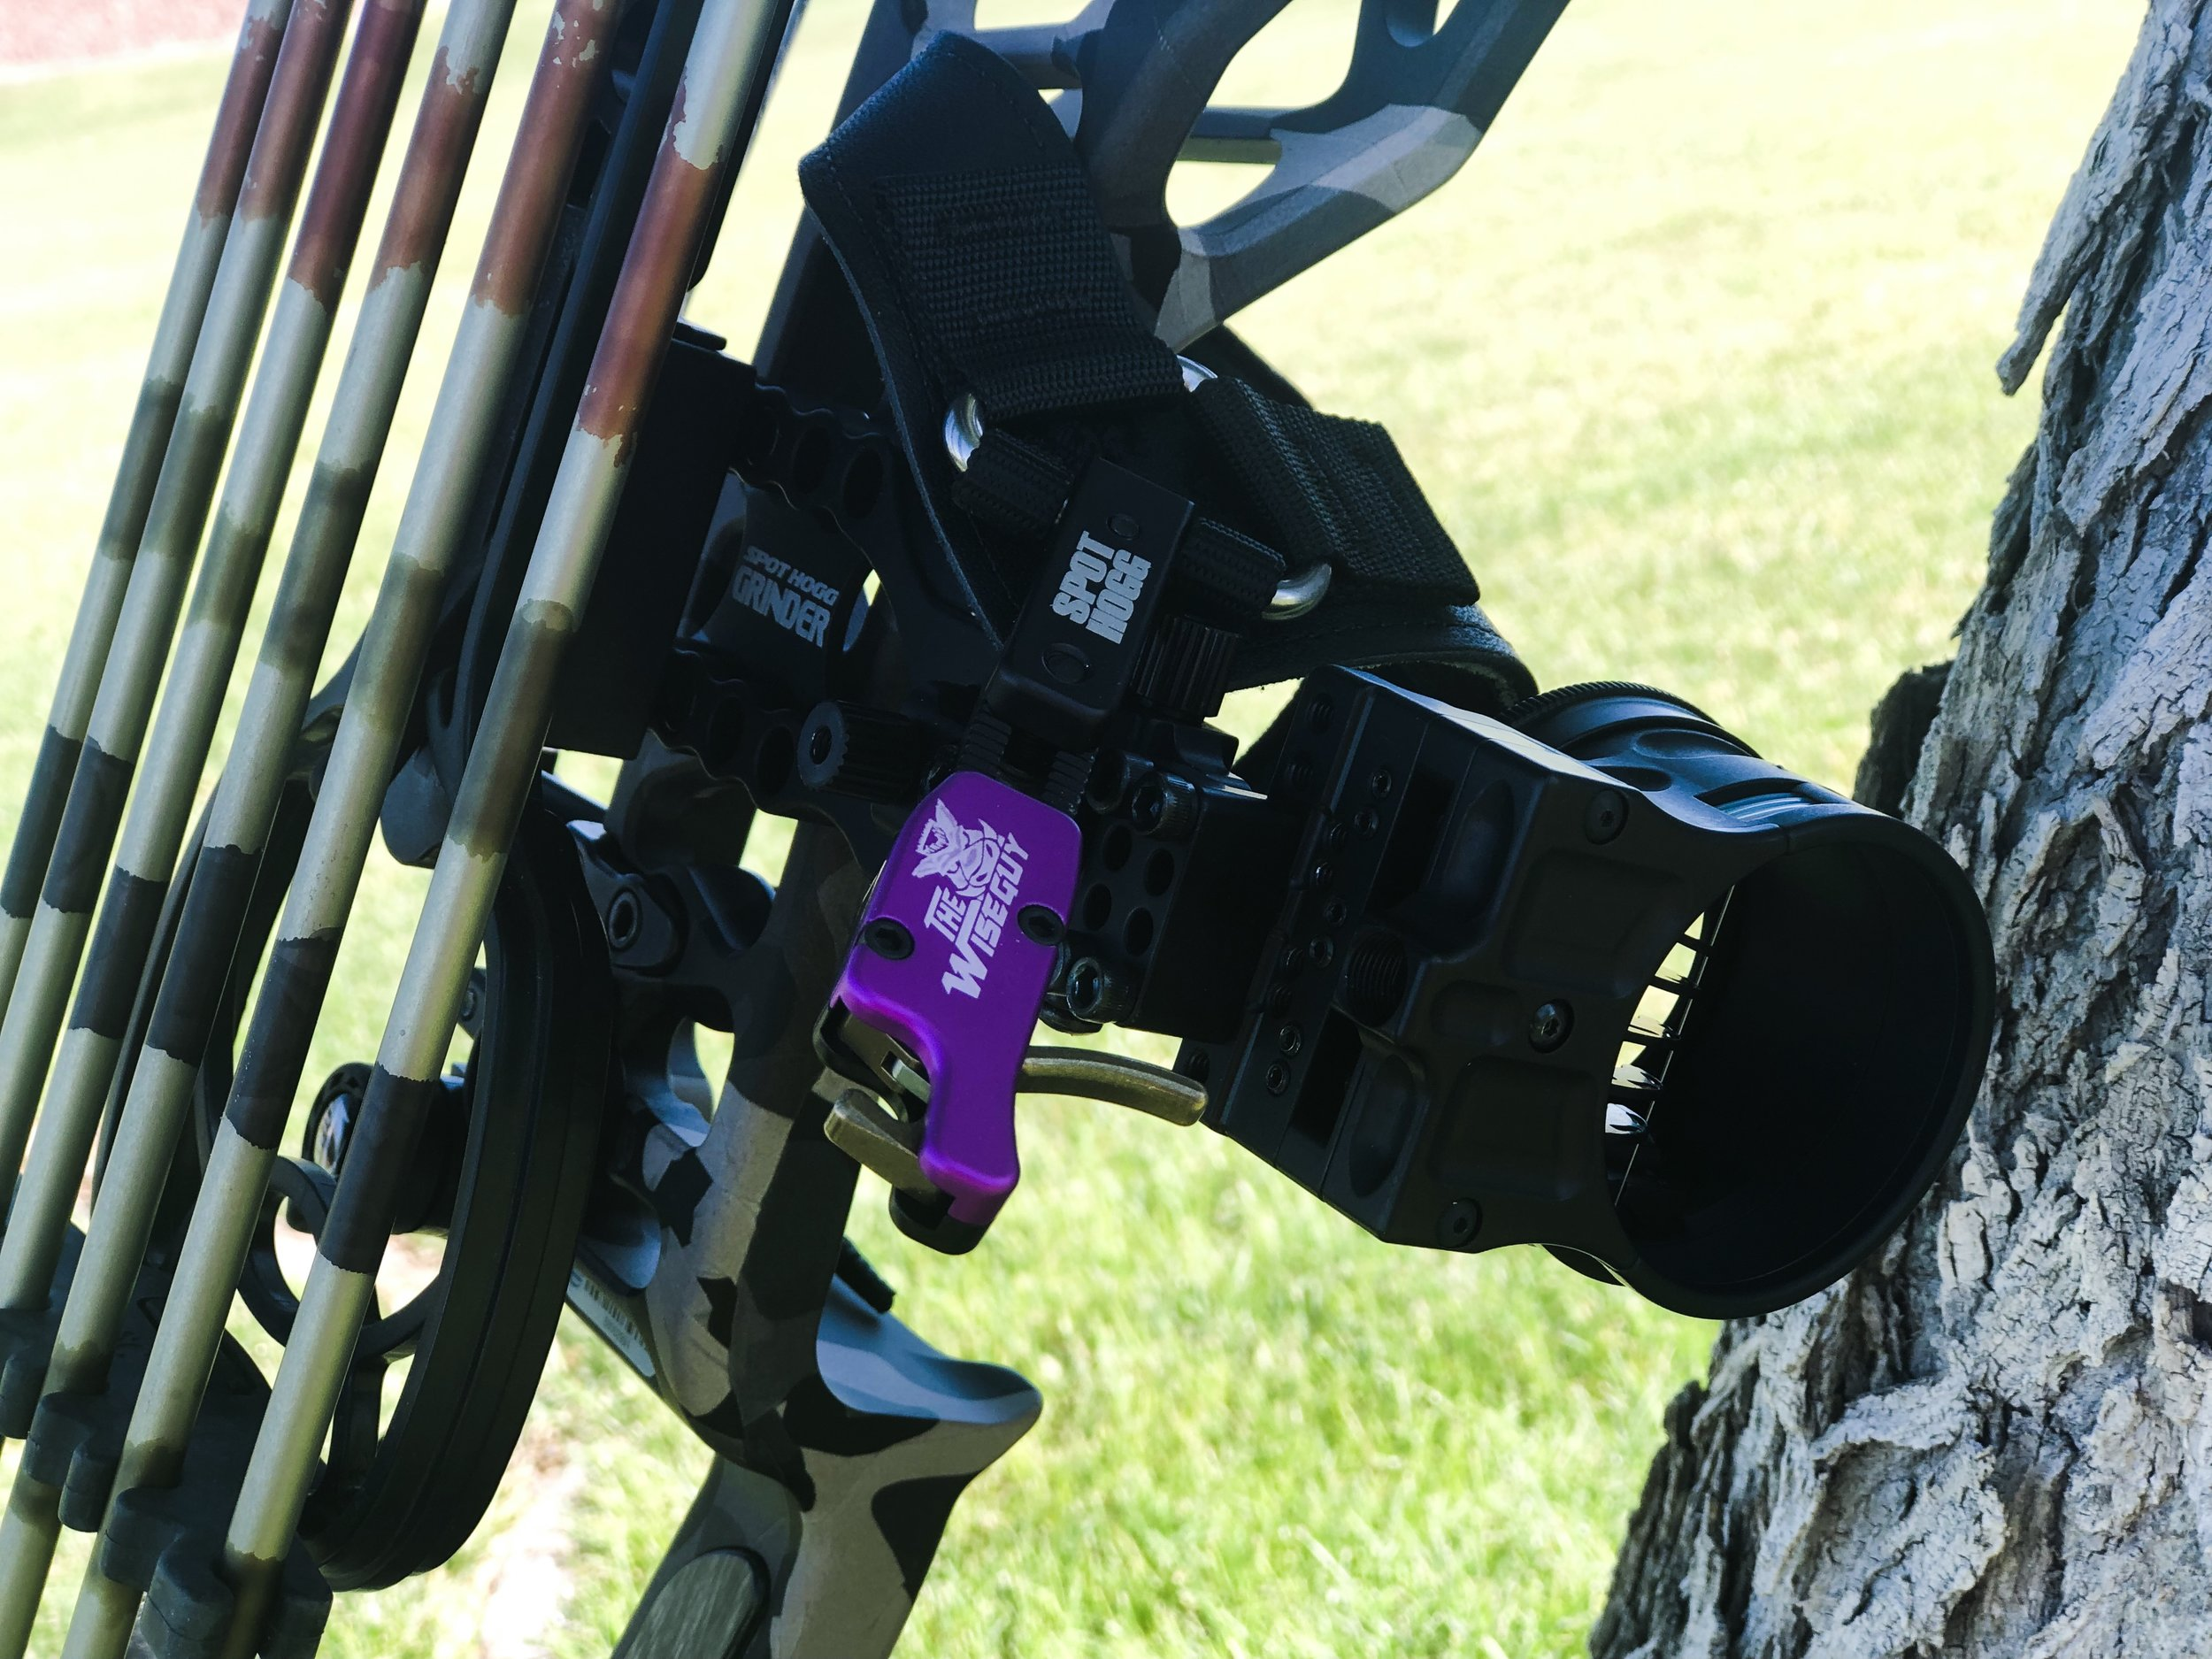 It feels great to finally have a release that can keep up with the rest of the bow package!